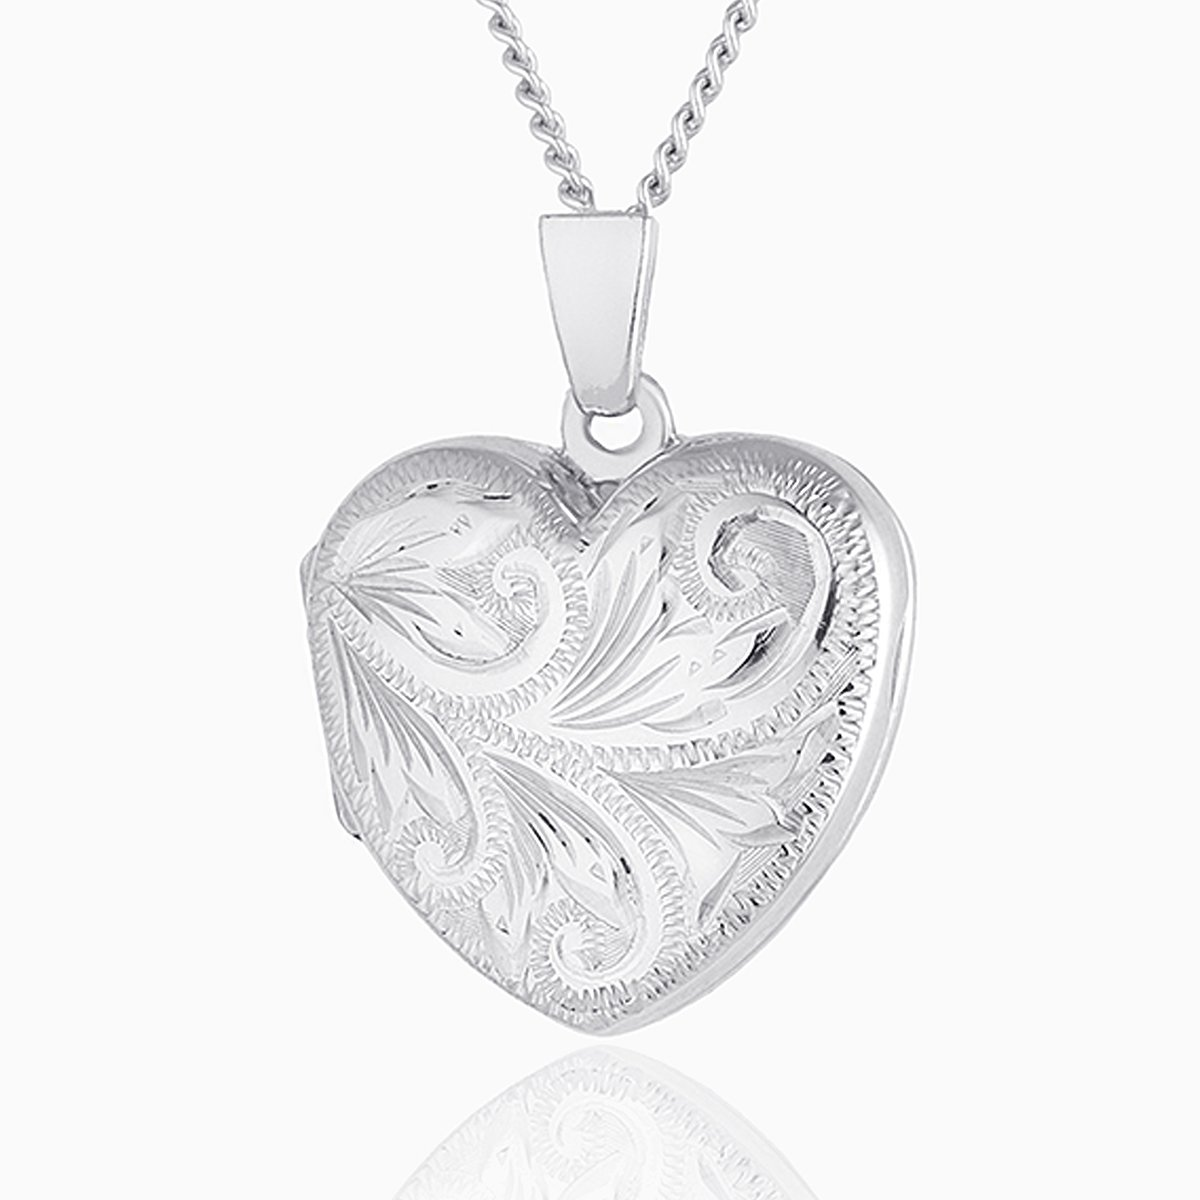 Product title: Hand Engraved White Gold Foliate Locket, product type: Locket